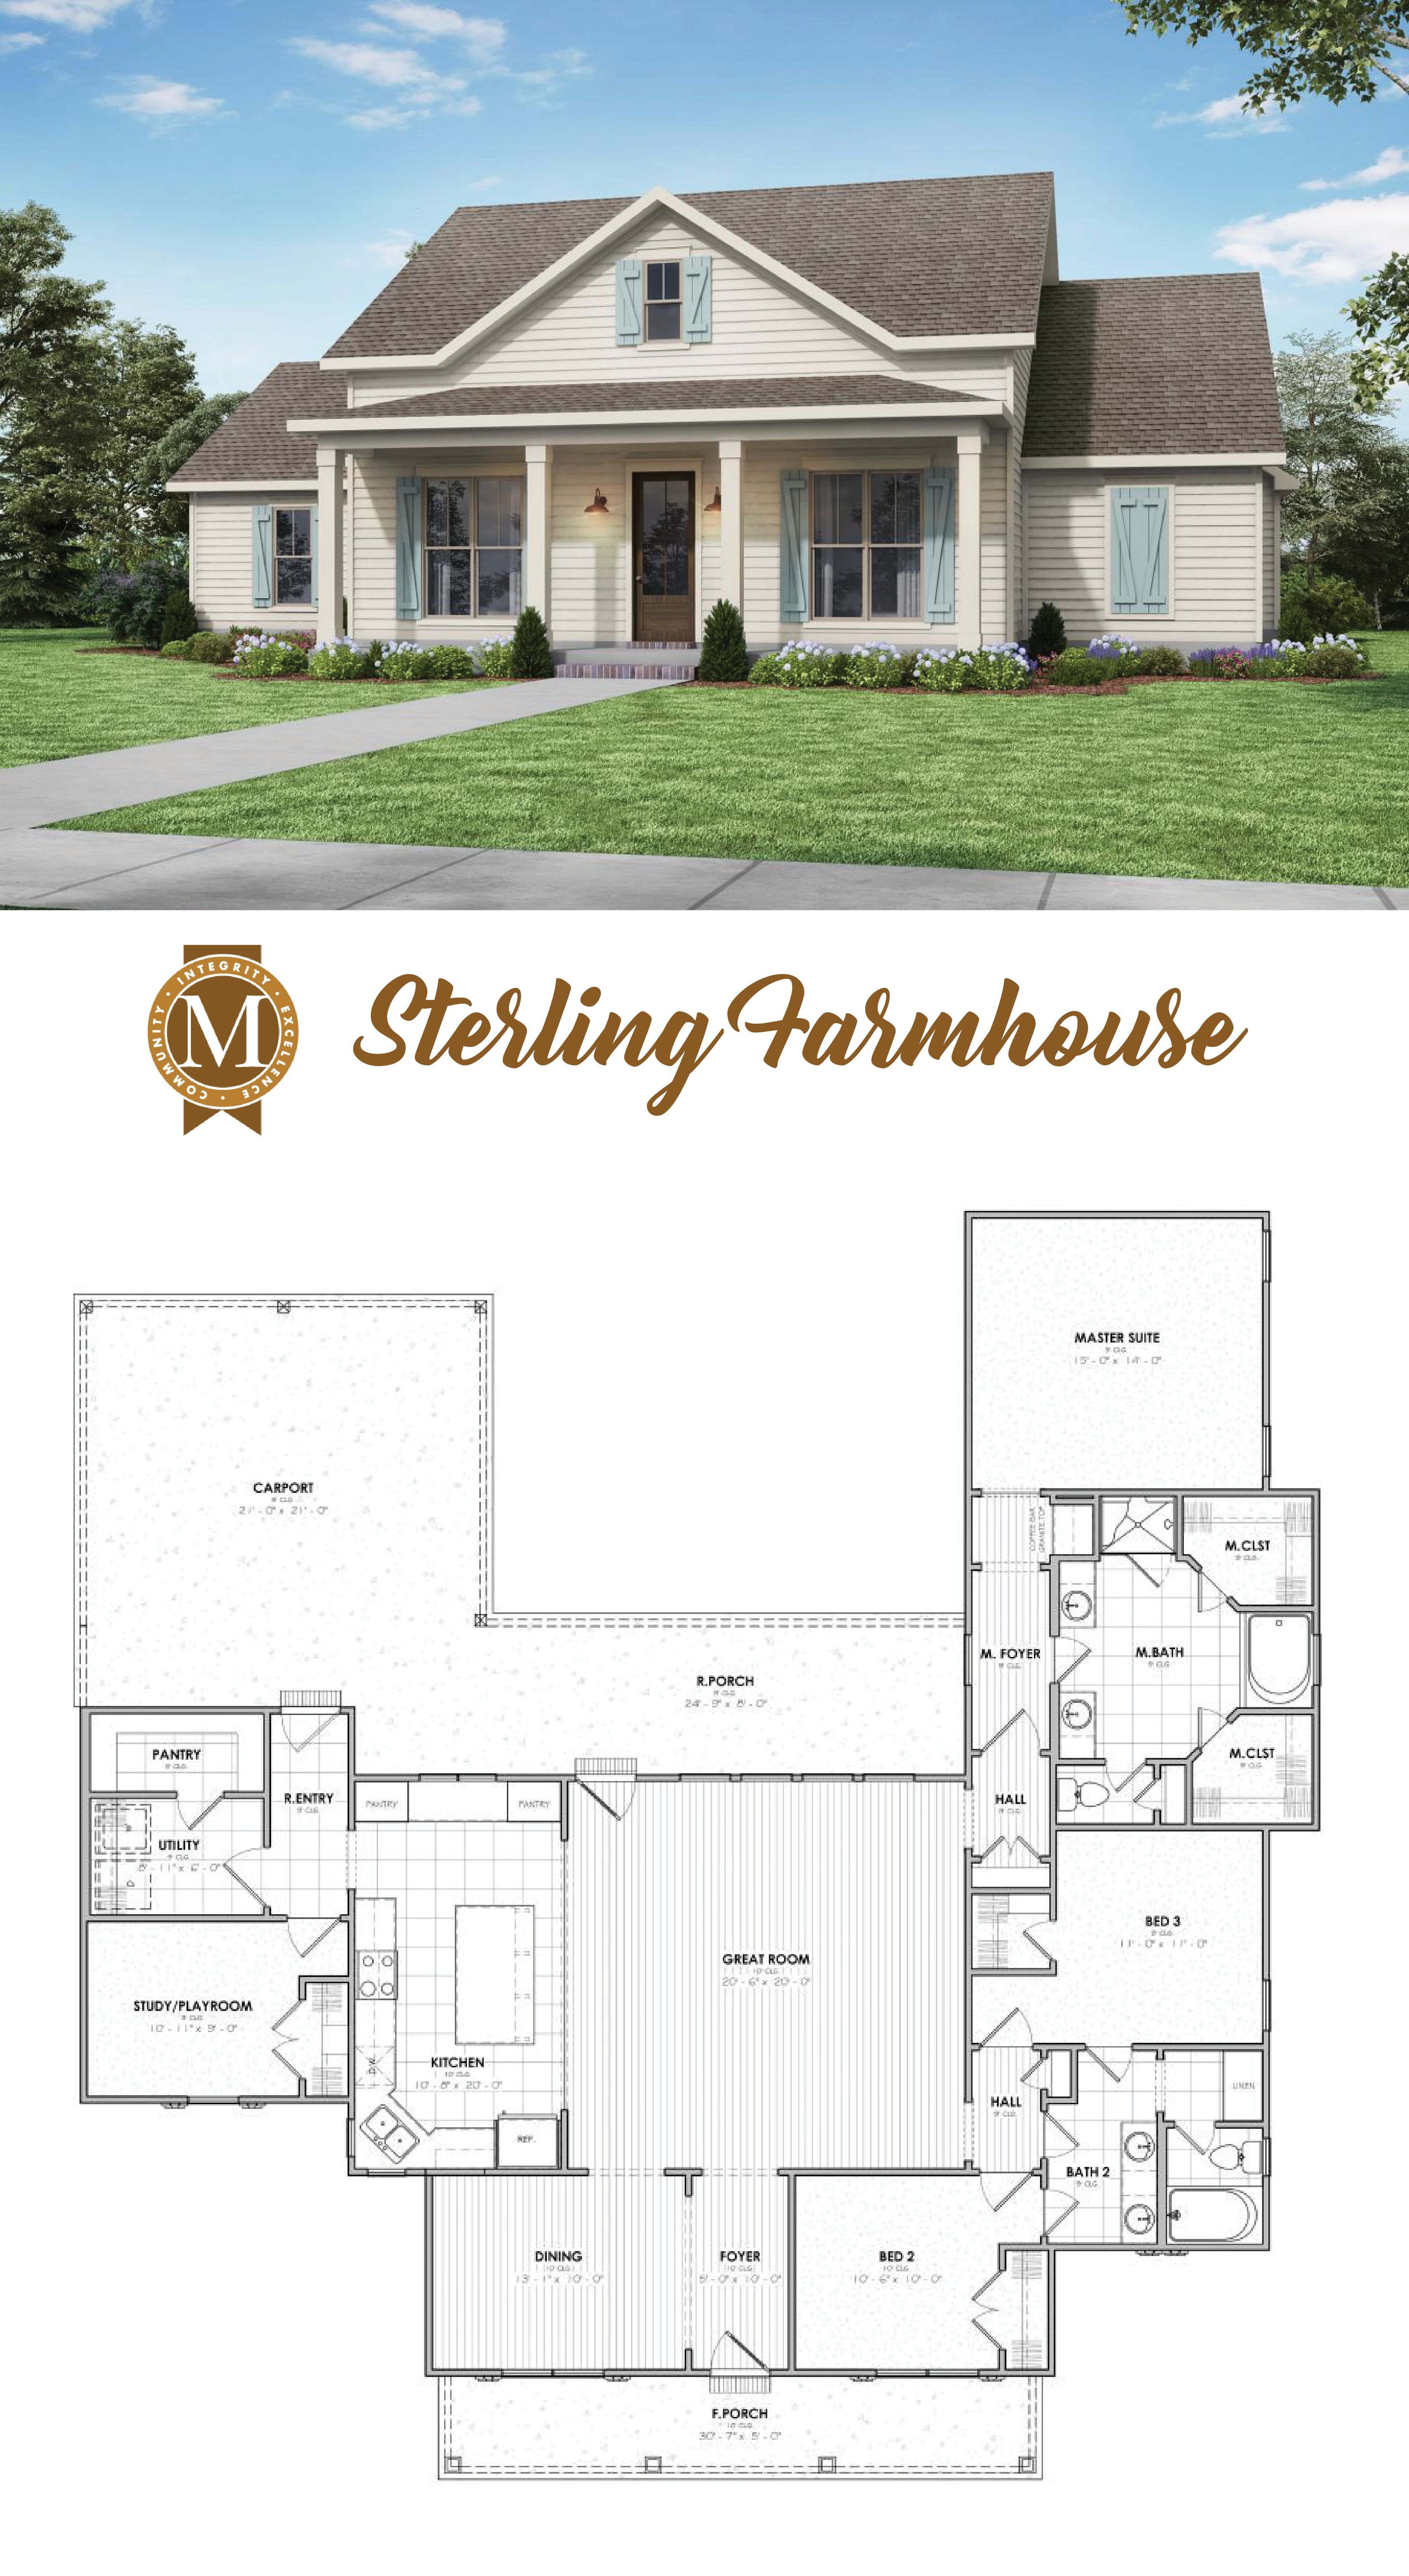 House Plans Baton Rouge Inspirational Living Sq Ft 2206 Bedrooms 3 or 4 Baths 2 Lafayette Lake